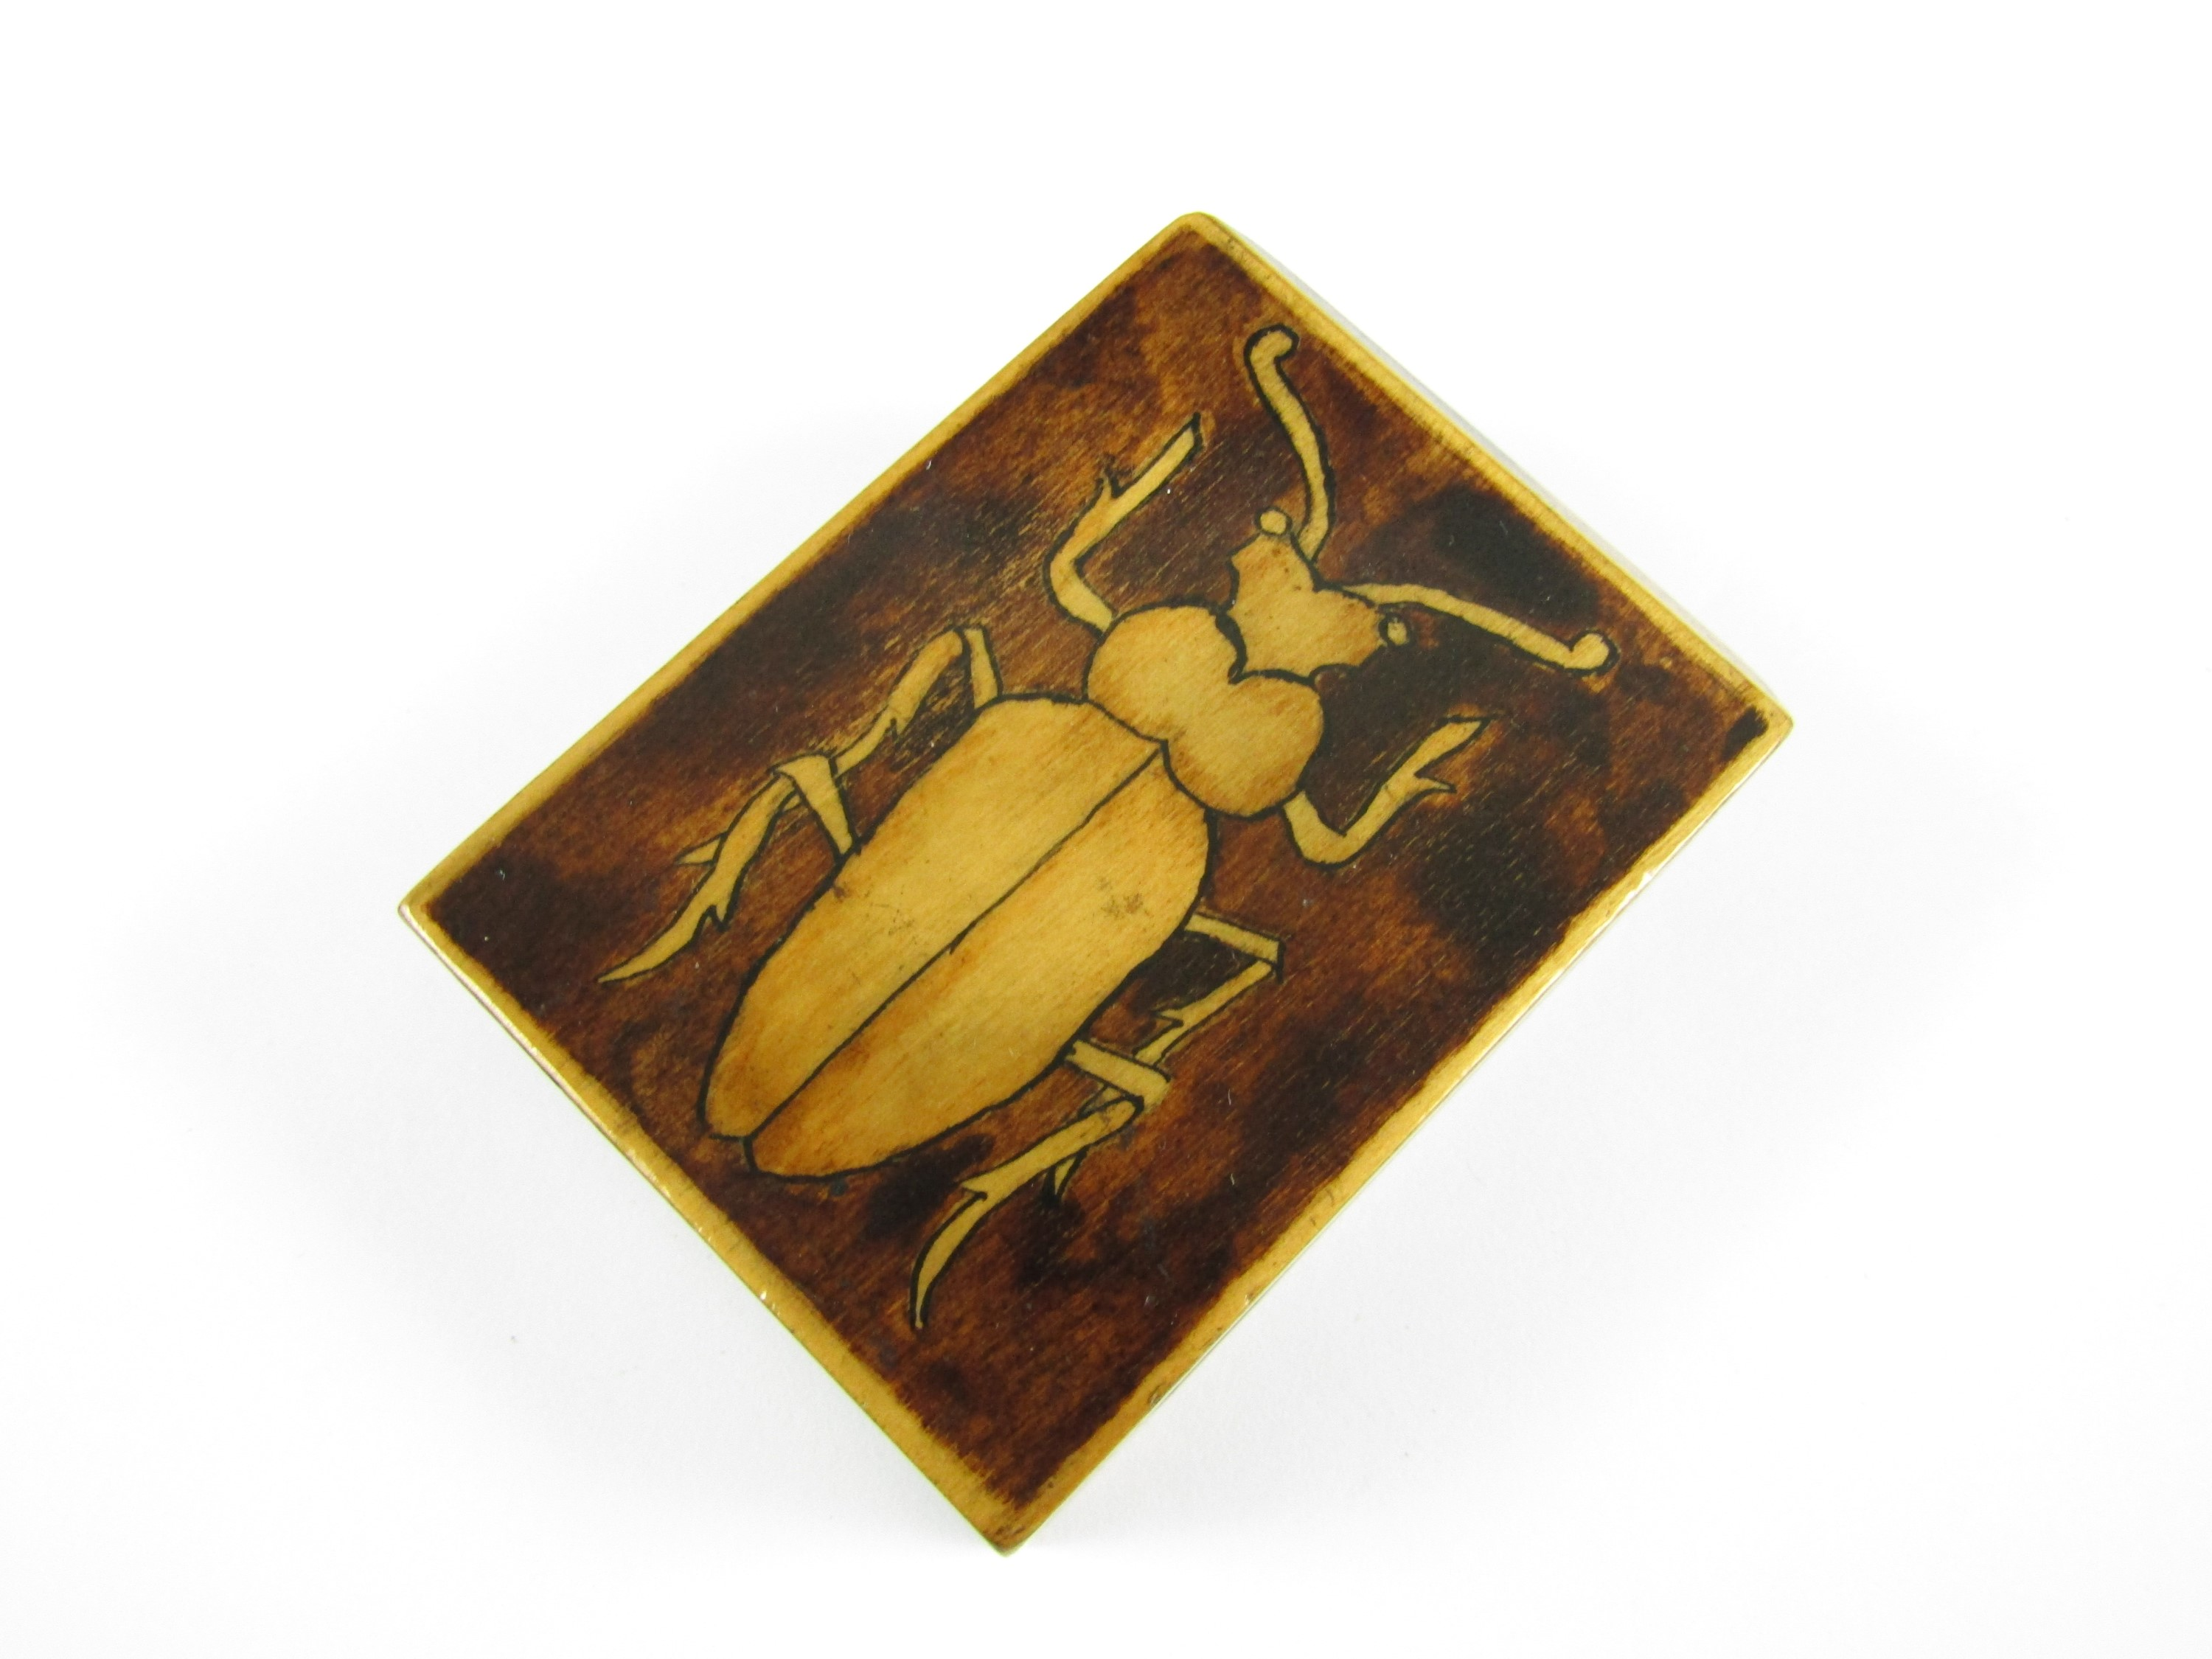 Lot 23 - A 1920's pen-work treen matchbox cover